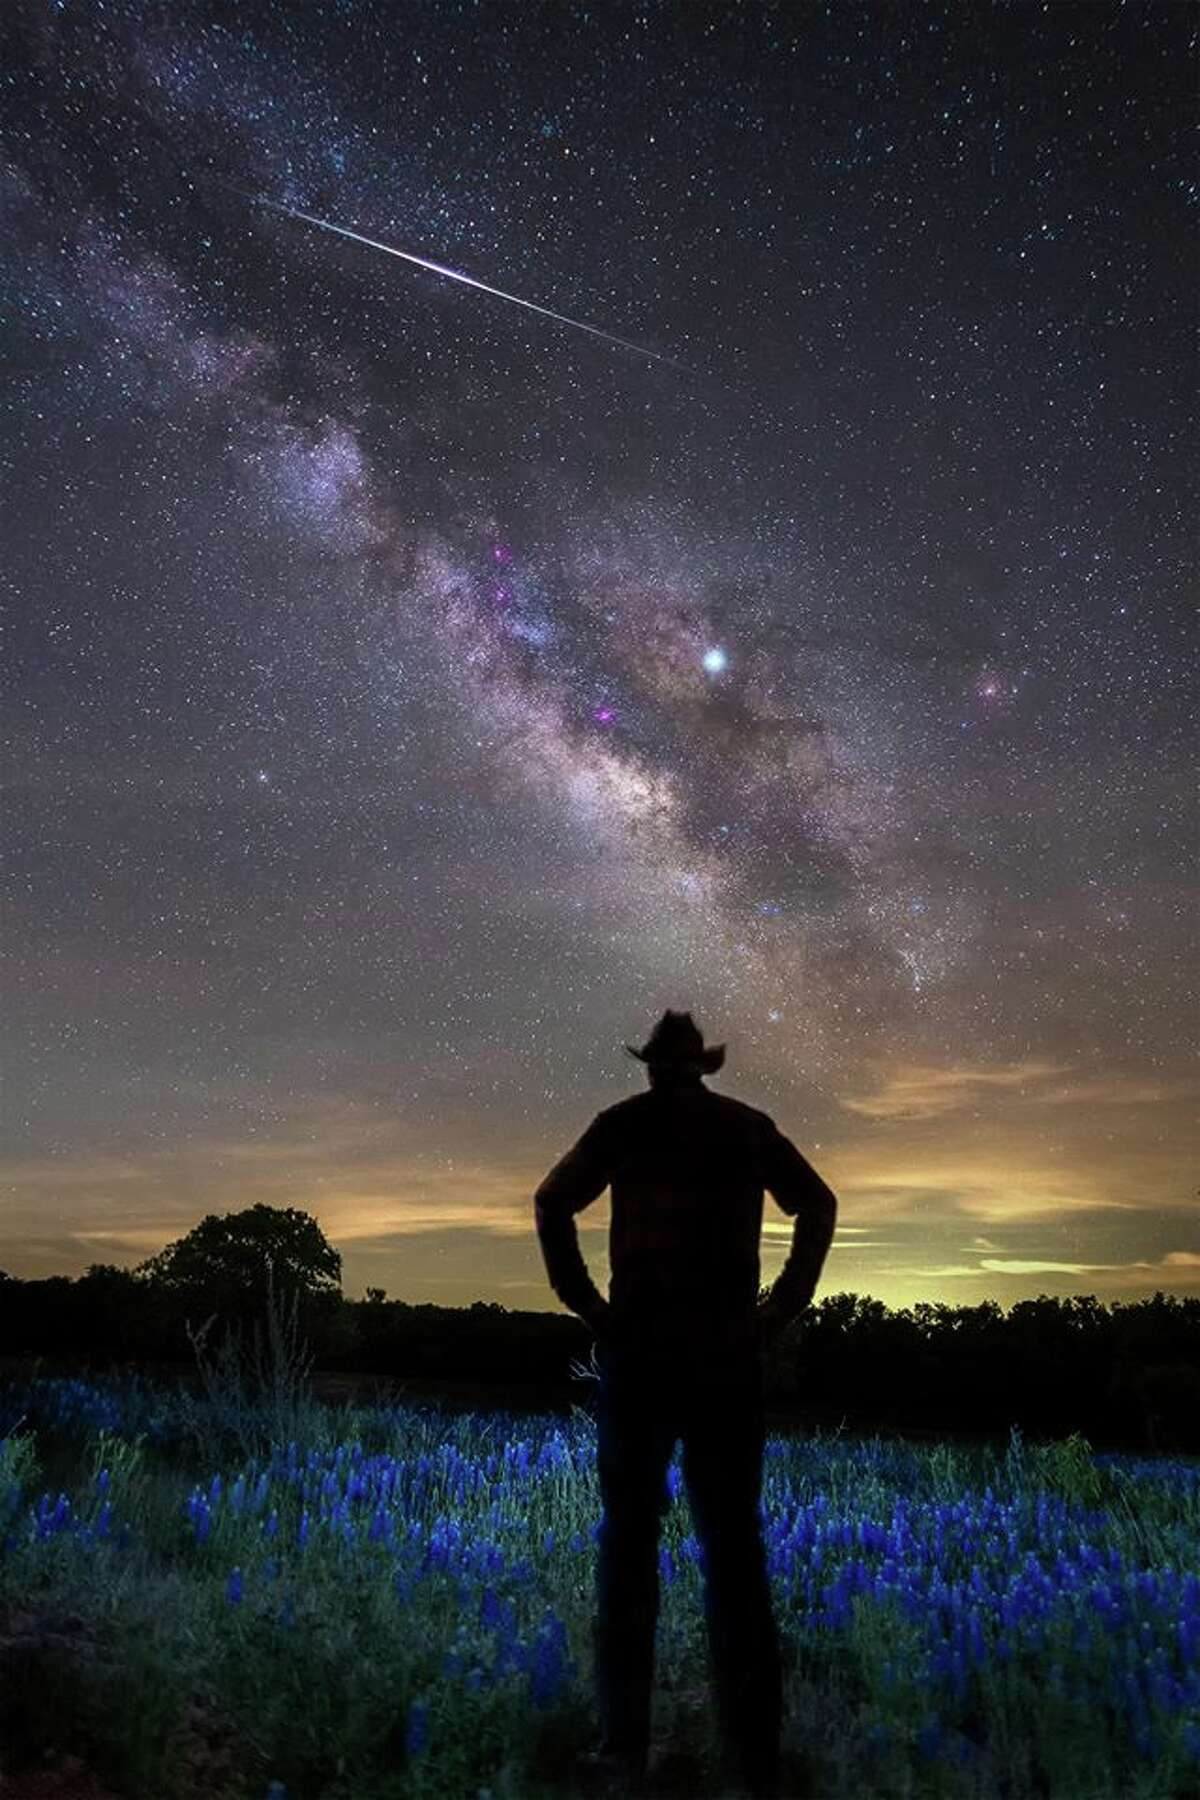 Meteor shower drought comes to an end When: April 22-23, May 6-7 After the Quadrantids peak in early January, stargazers will need to wait more than three months for the next opportunity to see a meteor shower, with the Lyrids peaking on the night of April 22 into the early morning hours of April 23. Folks won't need to wait nearly as long for another meteor shower to put on a dazzling display in the night sky, with the Eta Aquarids peaking just two weeks later. This is one of the best meteor showers of the year for the Southern Hemisphere that is known to produce up to 60 shooting stars per hour.